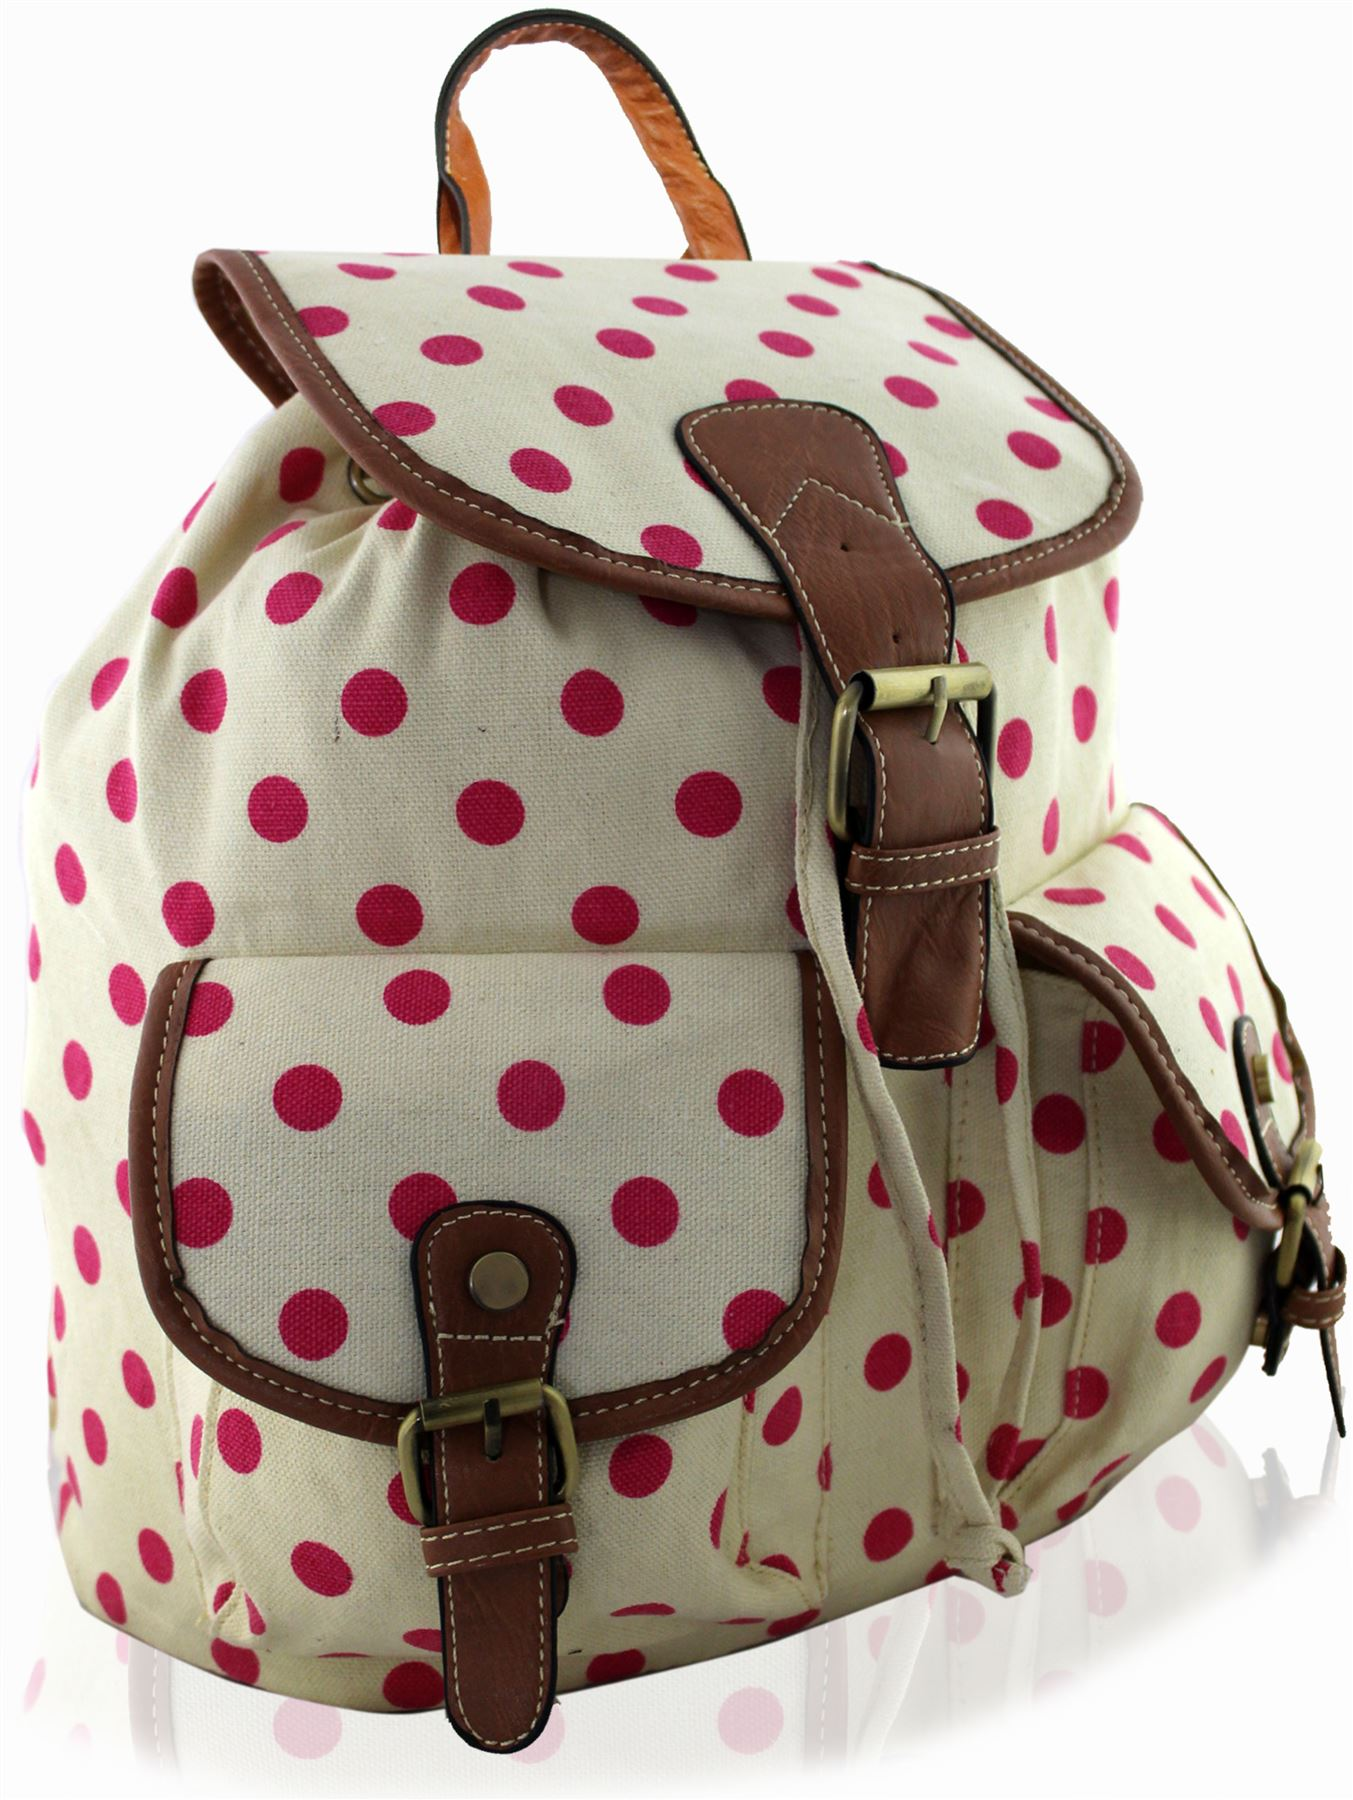 Fanci 3Pcs Polka Dot Princess Style Elementary Kids School Backpack Bookbag Set for Teens Girls School Bag with Lunch Kits.